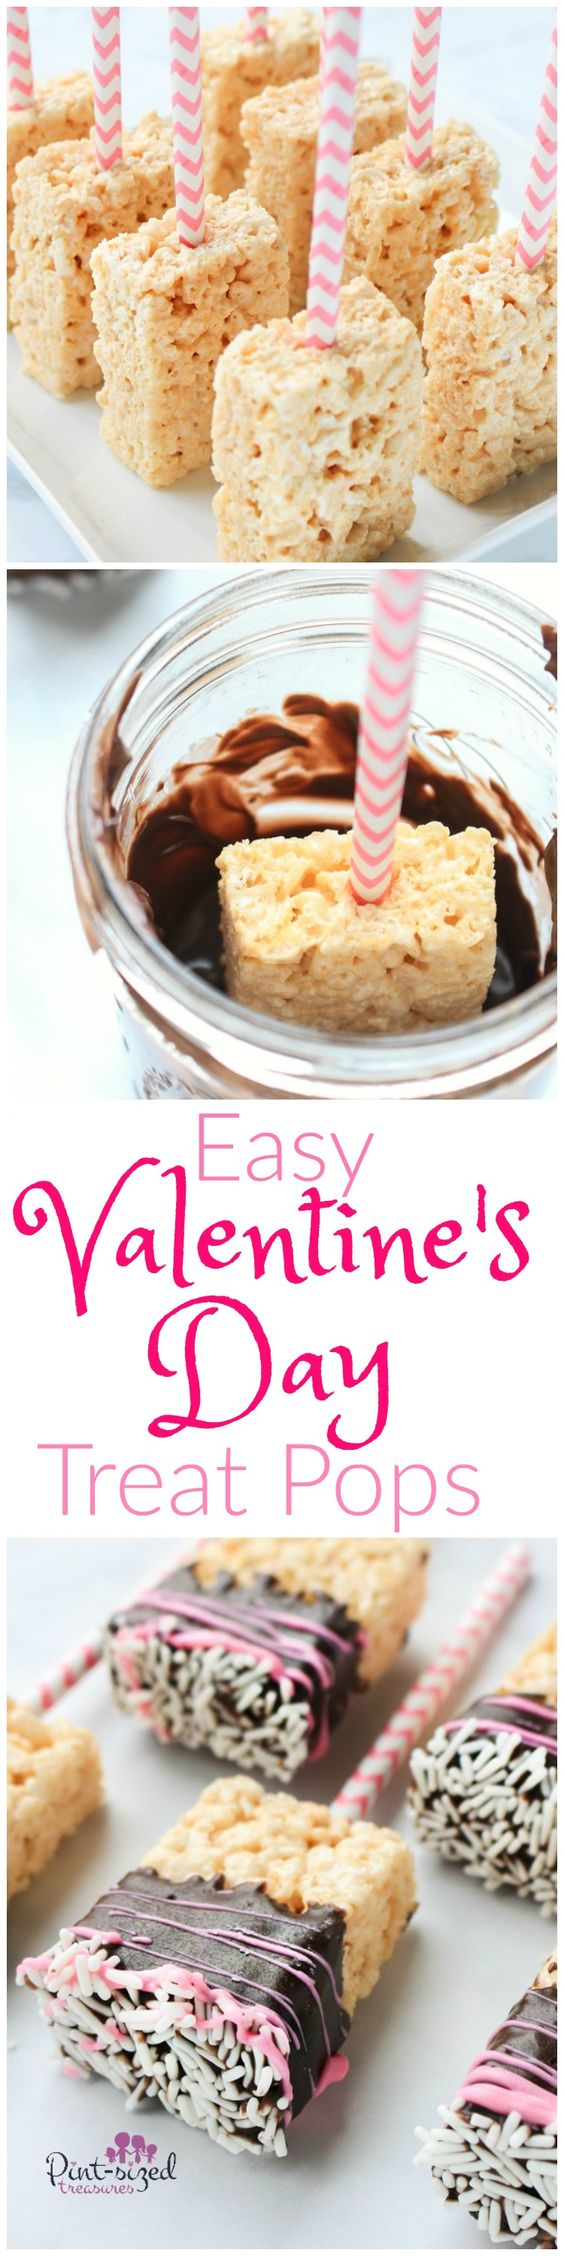 Valentine's Day Treat Pops | Print-Sized Treasures Easy Valentine's Day Dessert Recipes - Pink and Red Party Treats #valentinesdaydesserts #easyvalentinesdaydesserts #valentinesdaytreats #pinkandred #pinkdesserts #reddesserts #valentinesdayparty #valentinesday #heartshapedtreats #hearts #love